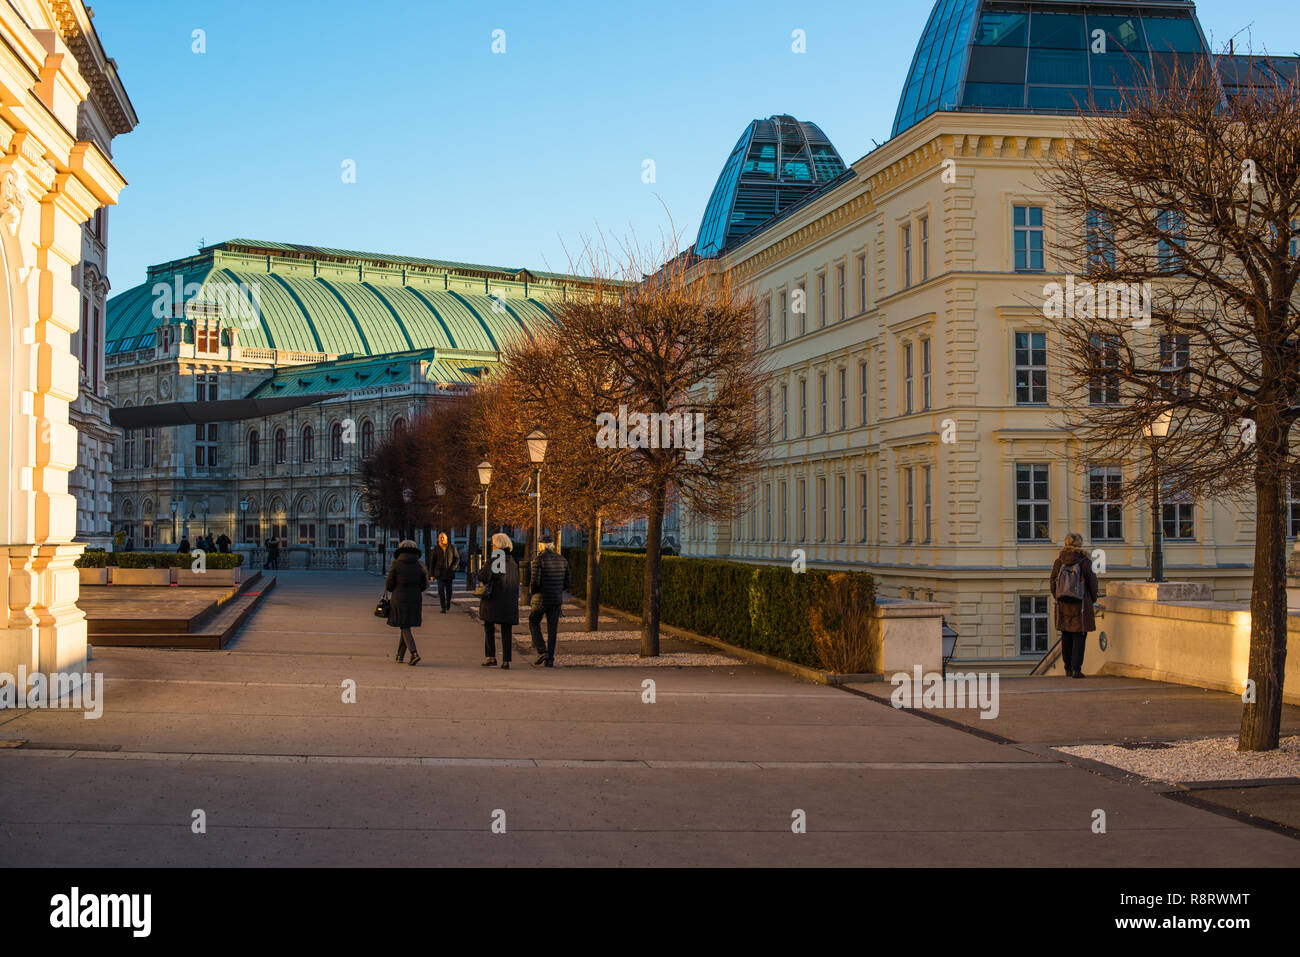 Street scene in the Innere Stadt (First District) of Vienna with the Alberina museum to the left and Opera house to the rear, Austria. - Stock Image